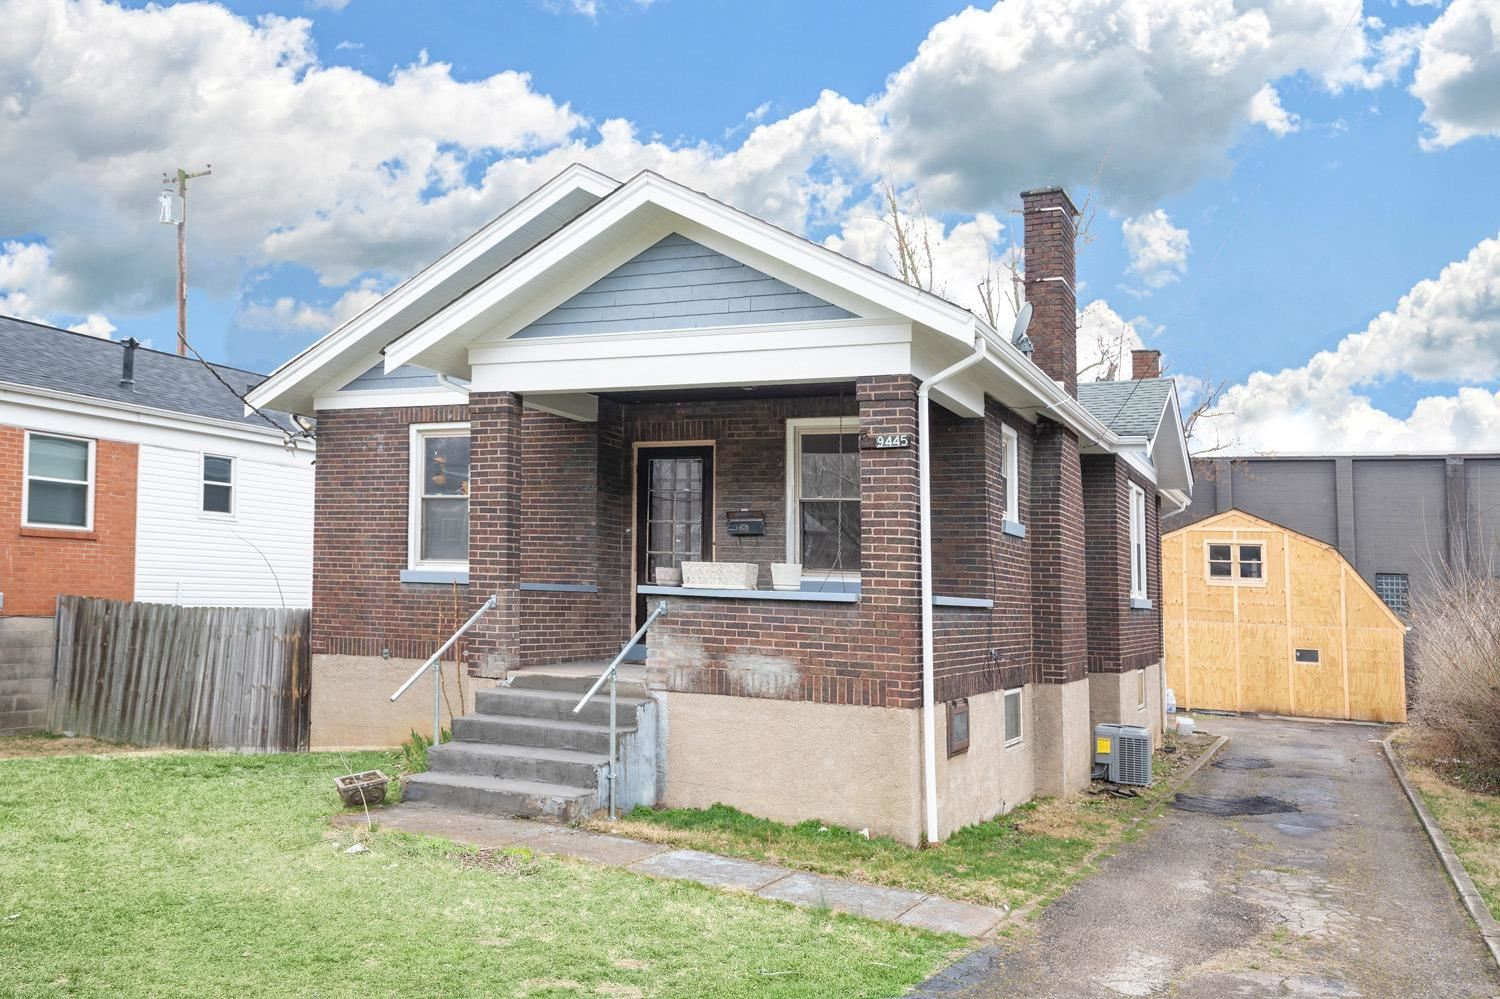 9445 Reading Road, Reading, OH 45215 - #: 1697174